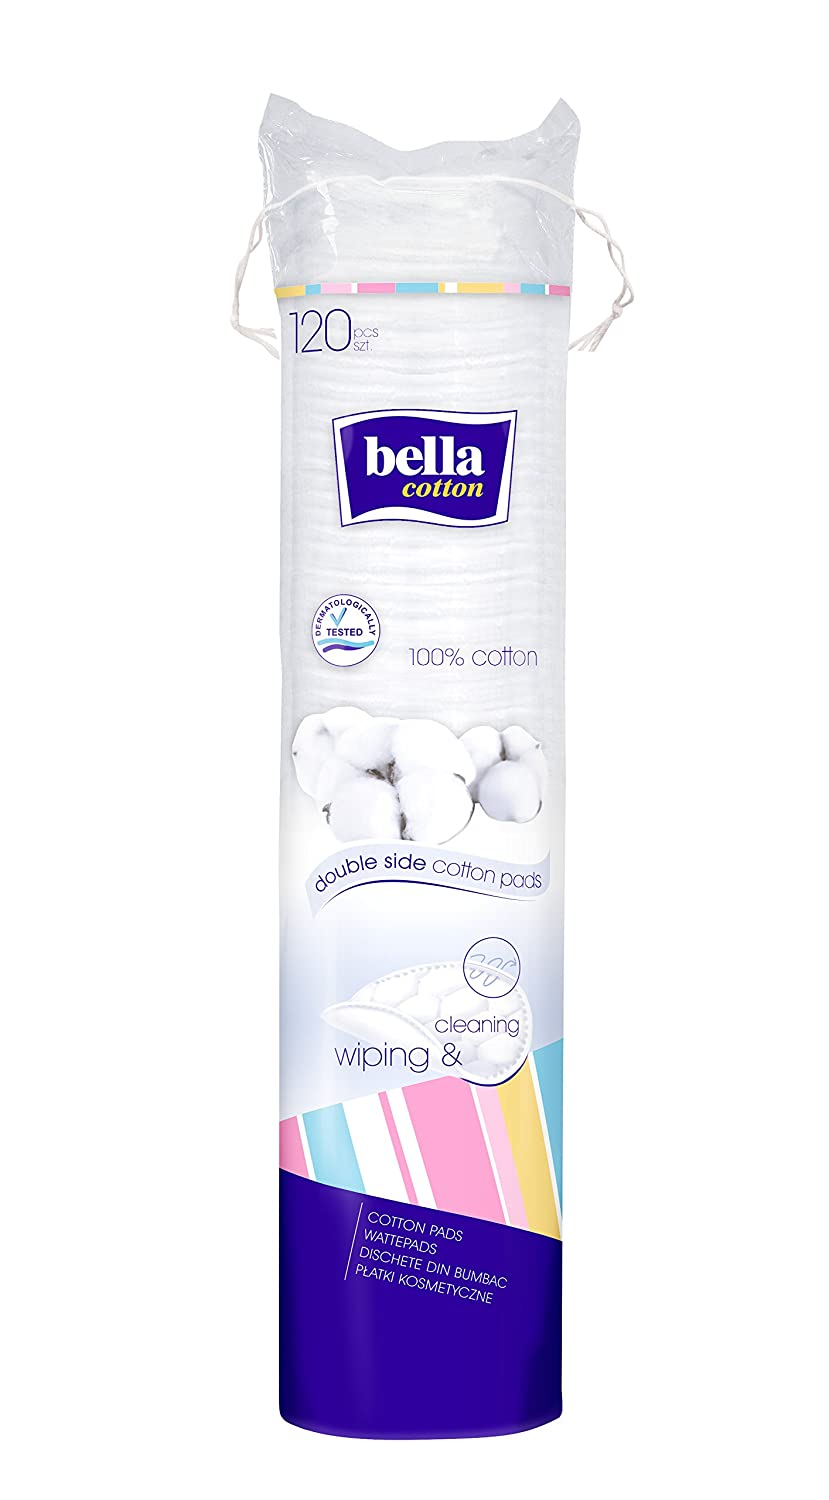 Bella Cotton Duo Cotton Pads Round (5 Packs of 120 Pads) BC-082-O120-015